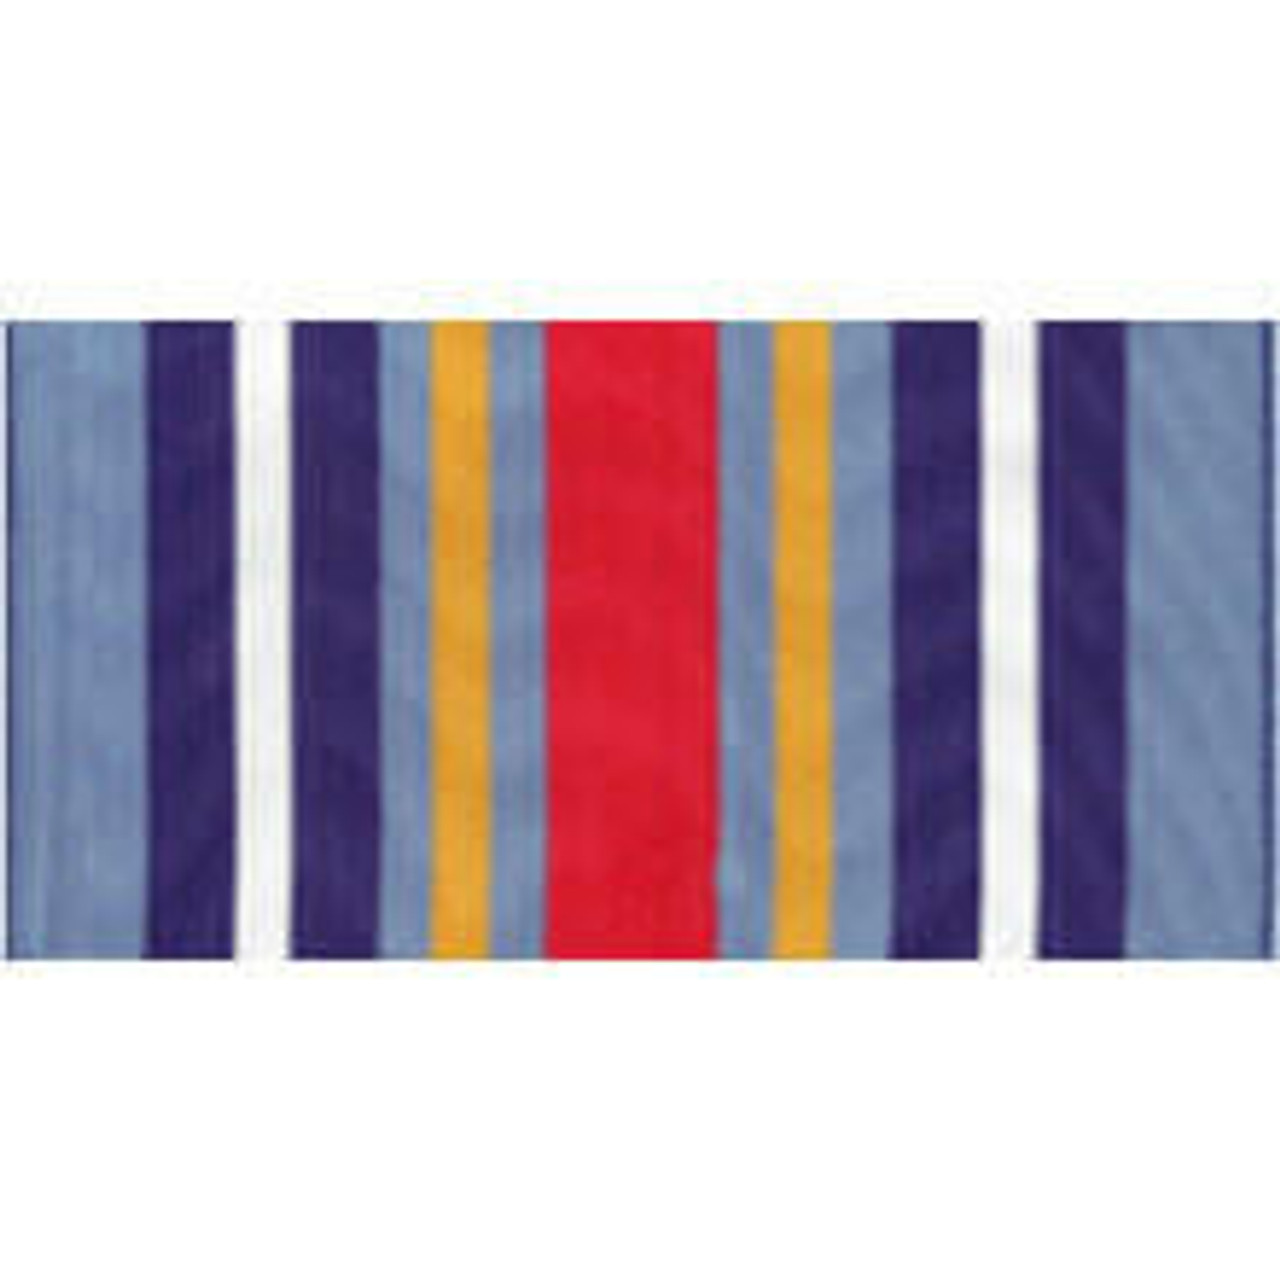 A rayon streamer with a vertical stripe design of light blue, dark blue with a white stripe inside, blue with a gold stripe inside, and a red stripe mirrored on both sides.